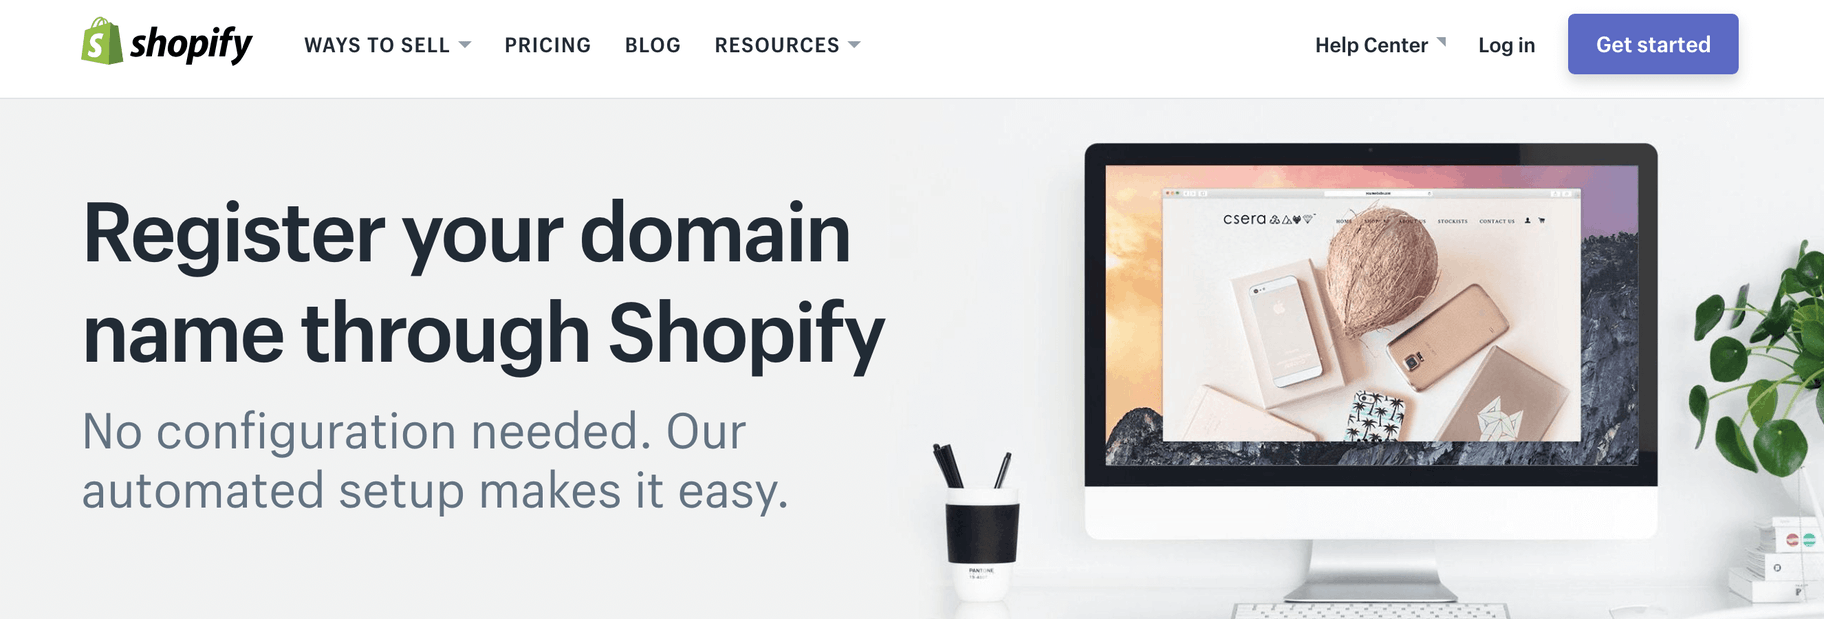 Shopify Domain Registration